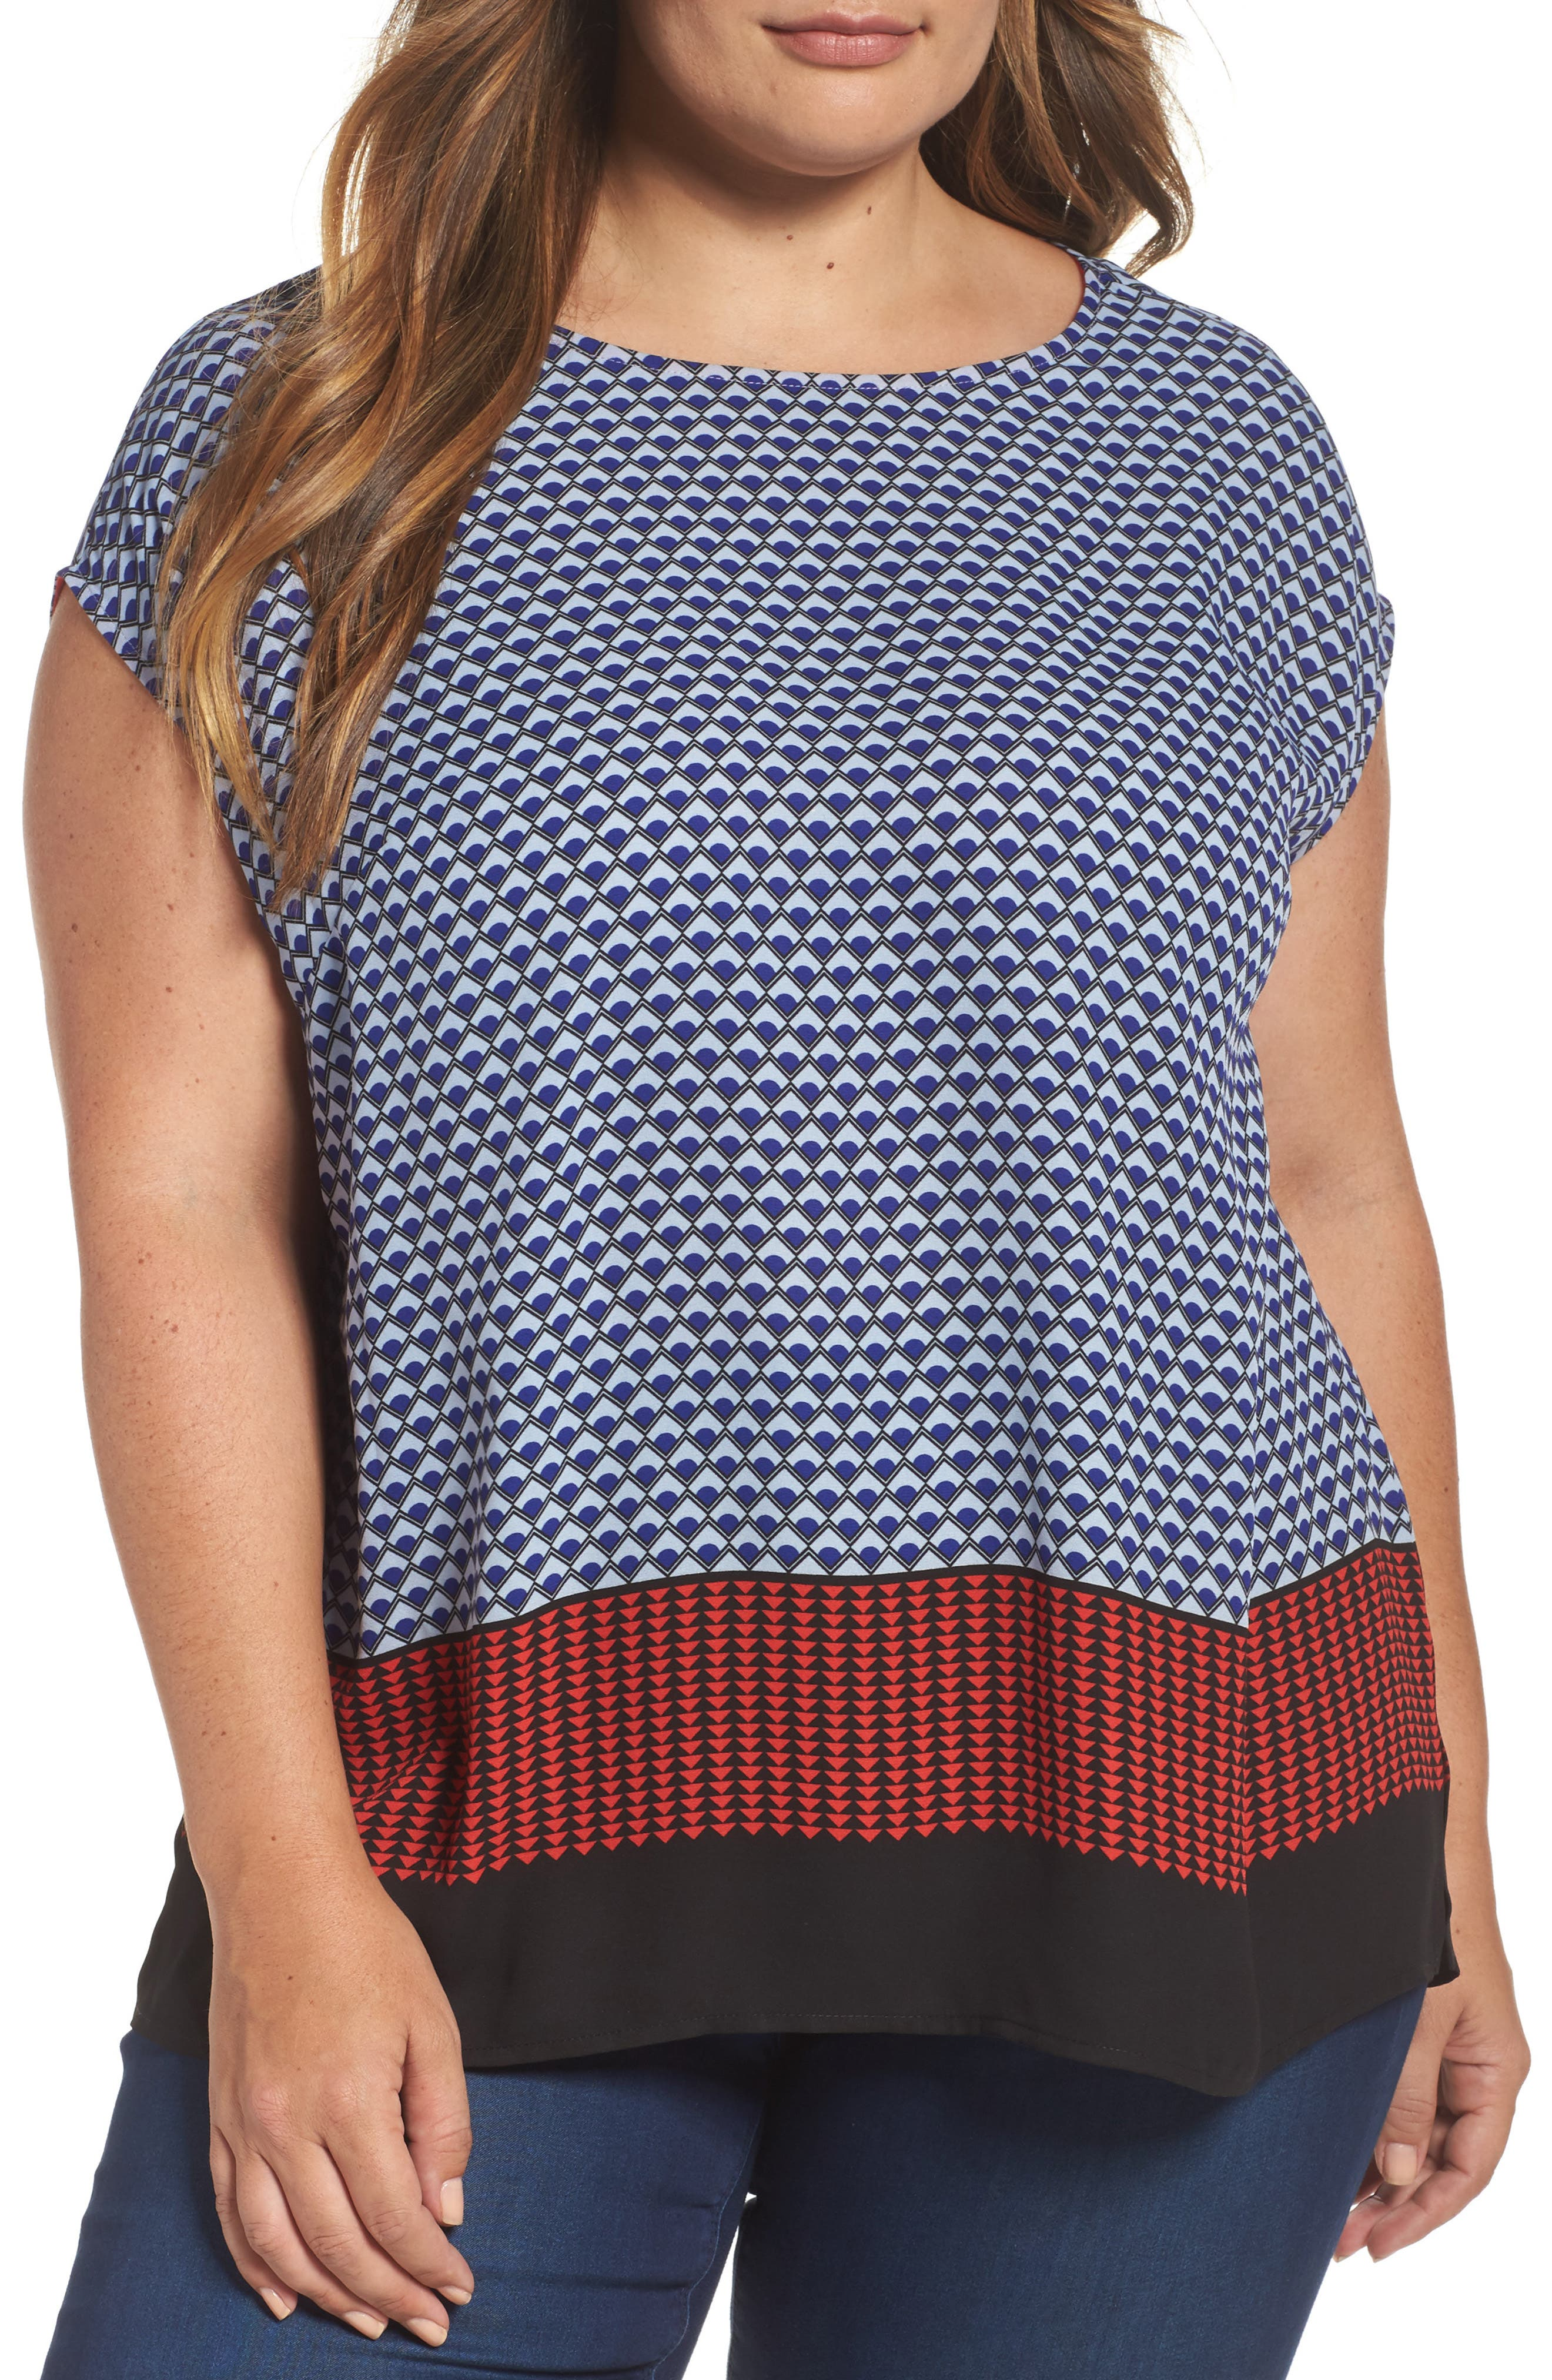 Alternate Image 1 Selected - Vince Camuto Foulard Border Print Blouse (Plus Size)